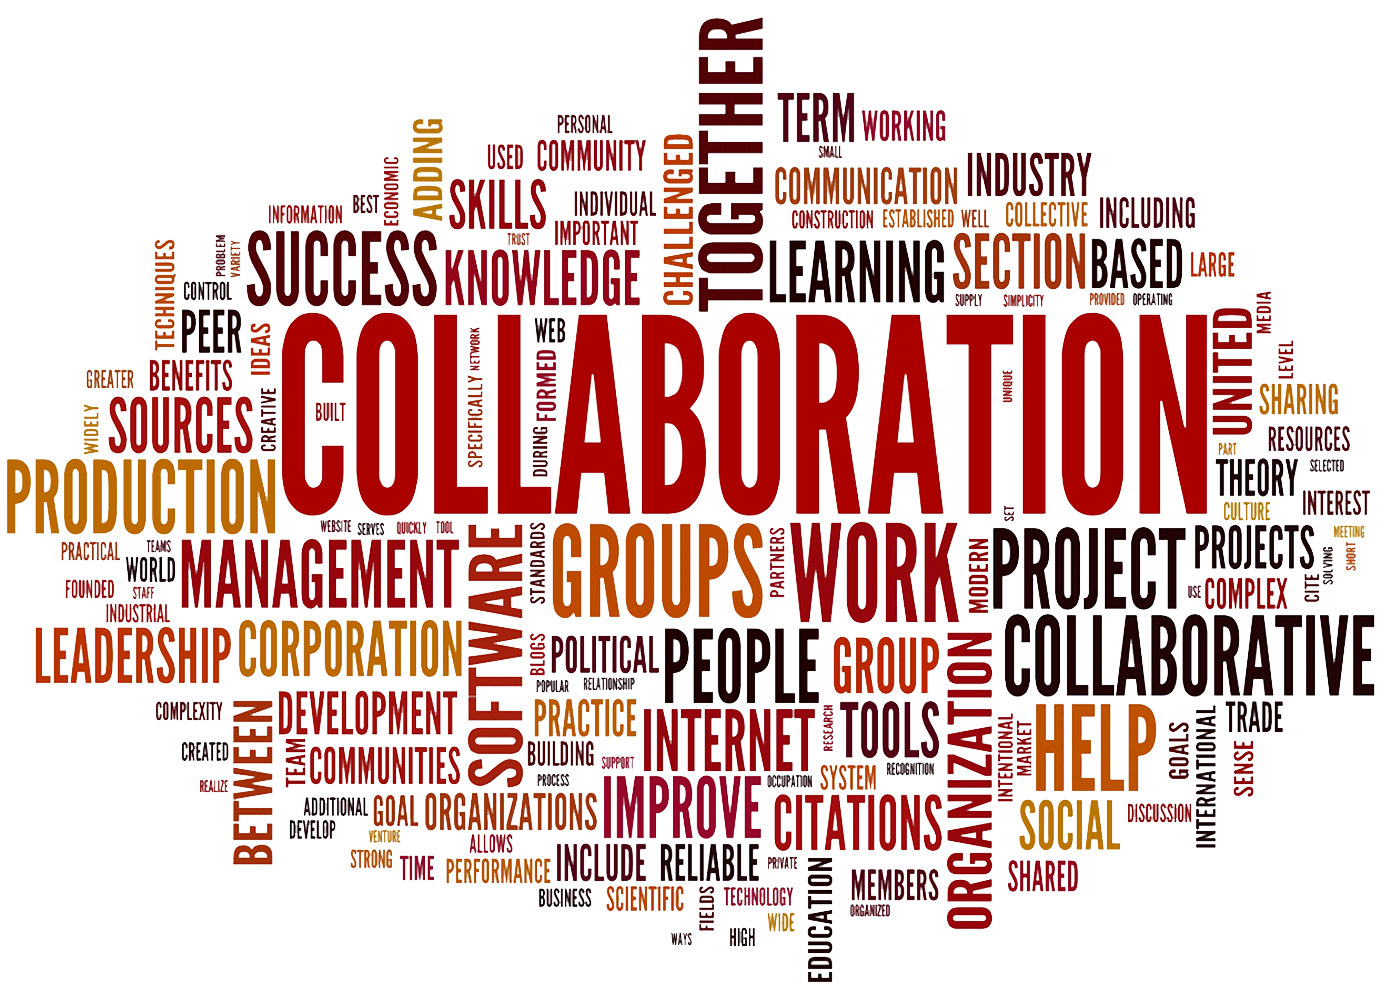 Collaboration Word Cloud image